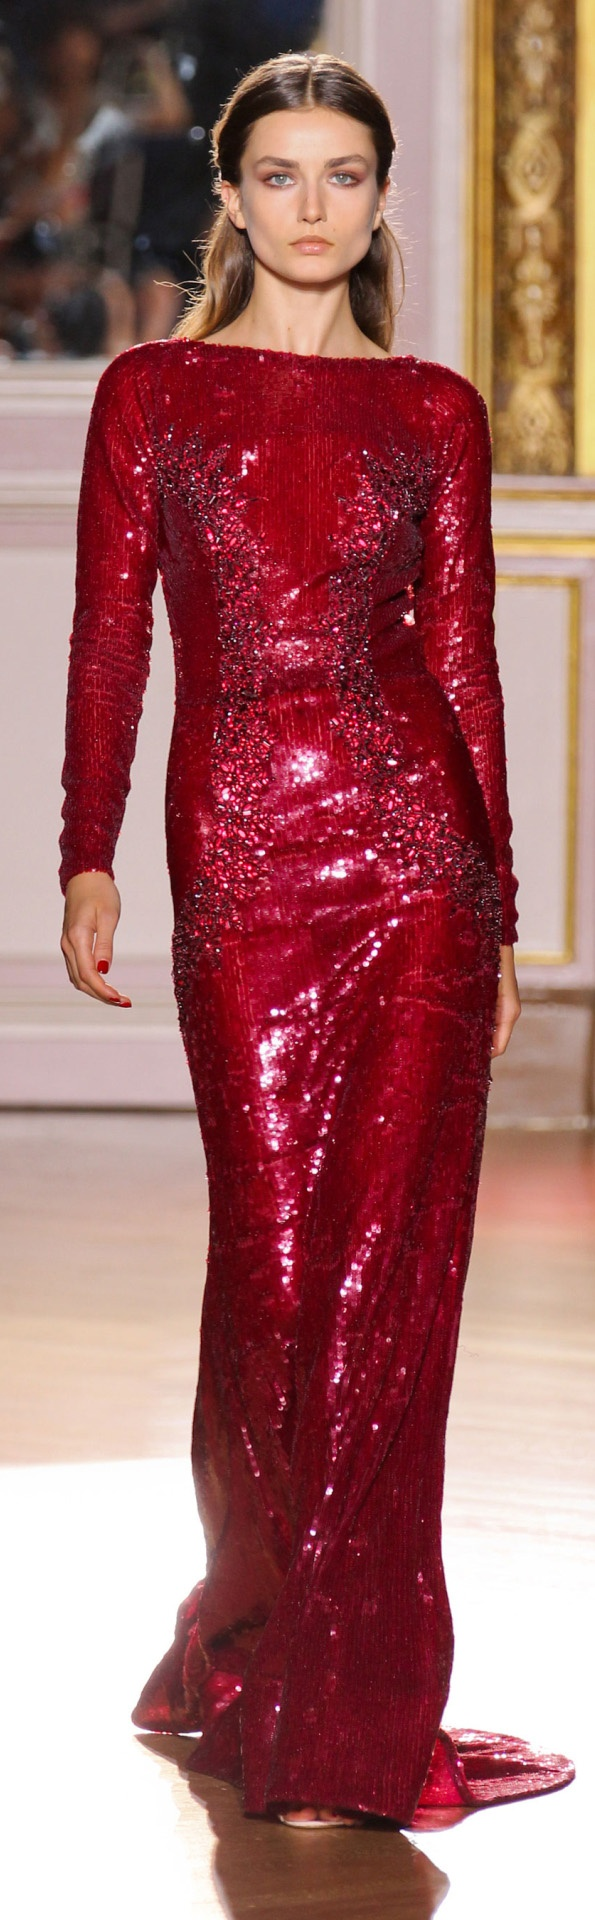 Zuhair Murad Couture Fall 2012 Collection: Jessica Rabbit, Fashion, Zuhairmurad, Zuhair Murad, Red, Colors, Dresses, Fall 2012, Haute Couture